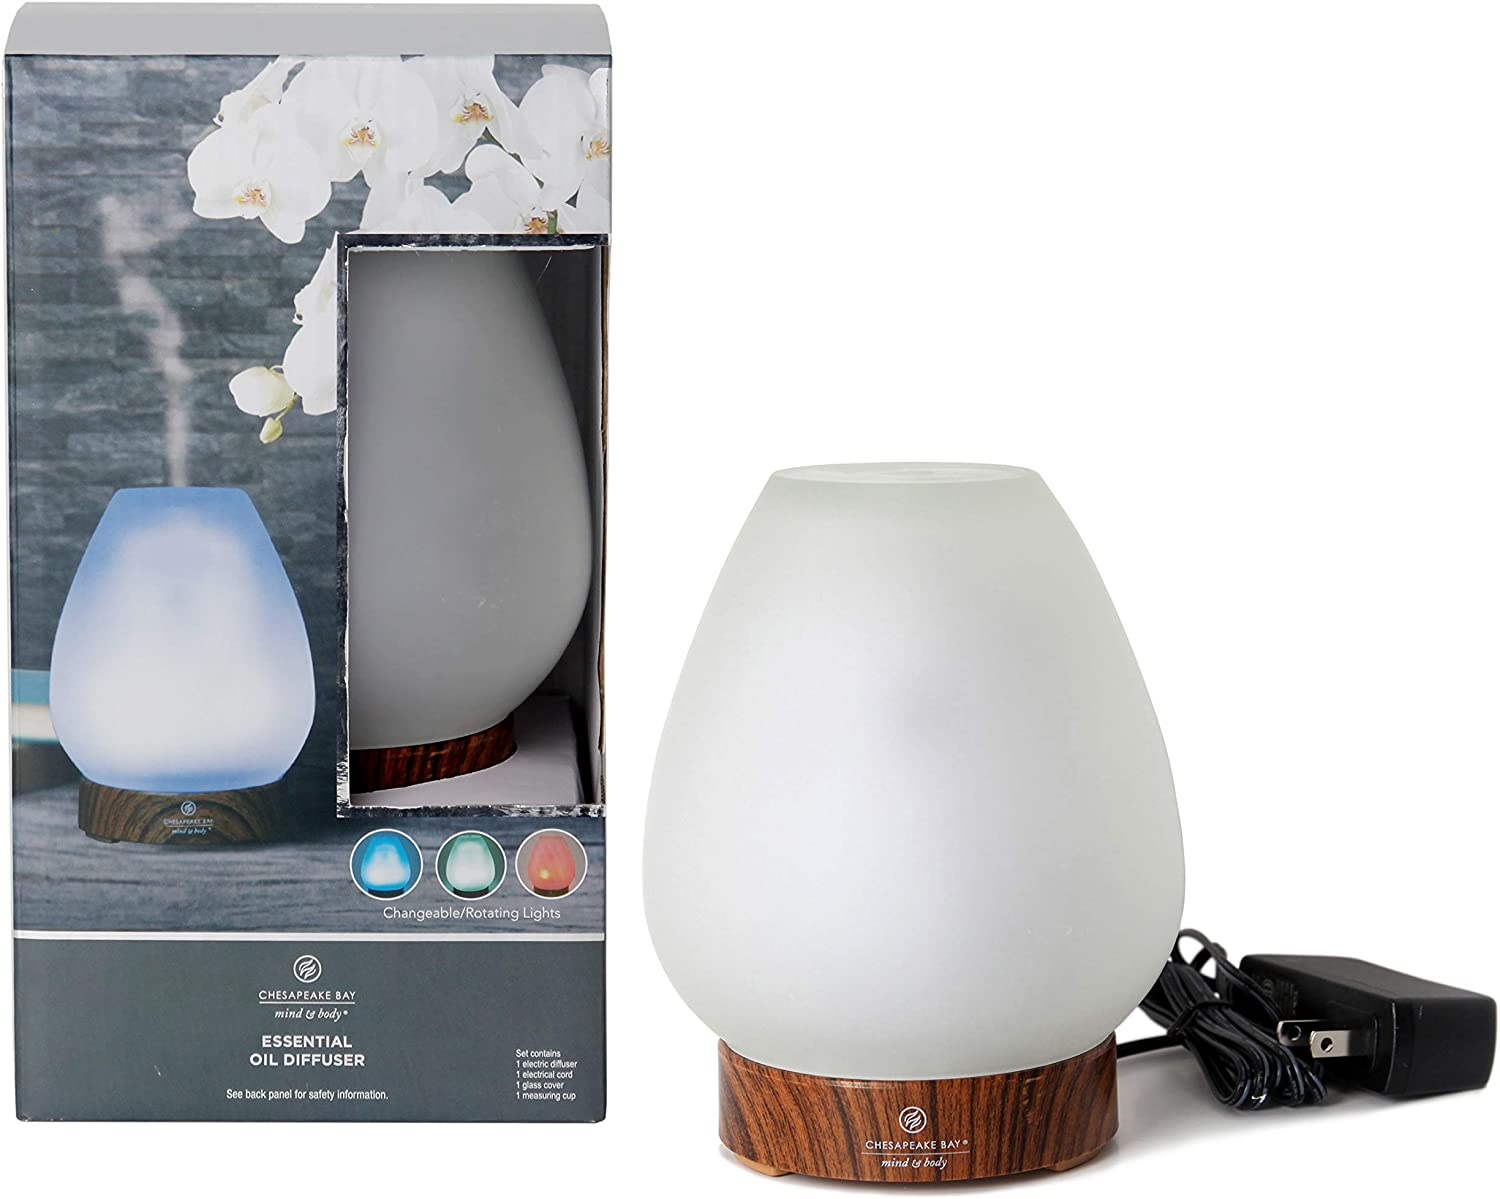 Chesapeake Bay Candle PTC40930 Aromatherapy Essential Oil Diffuser, Wood Grain Base with Waterless Auto Shut-Off Rotating LED Color Lights, White Frosted Glass Cover, 100ml